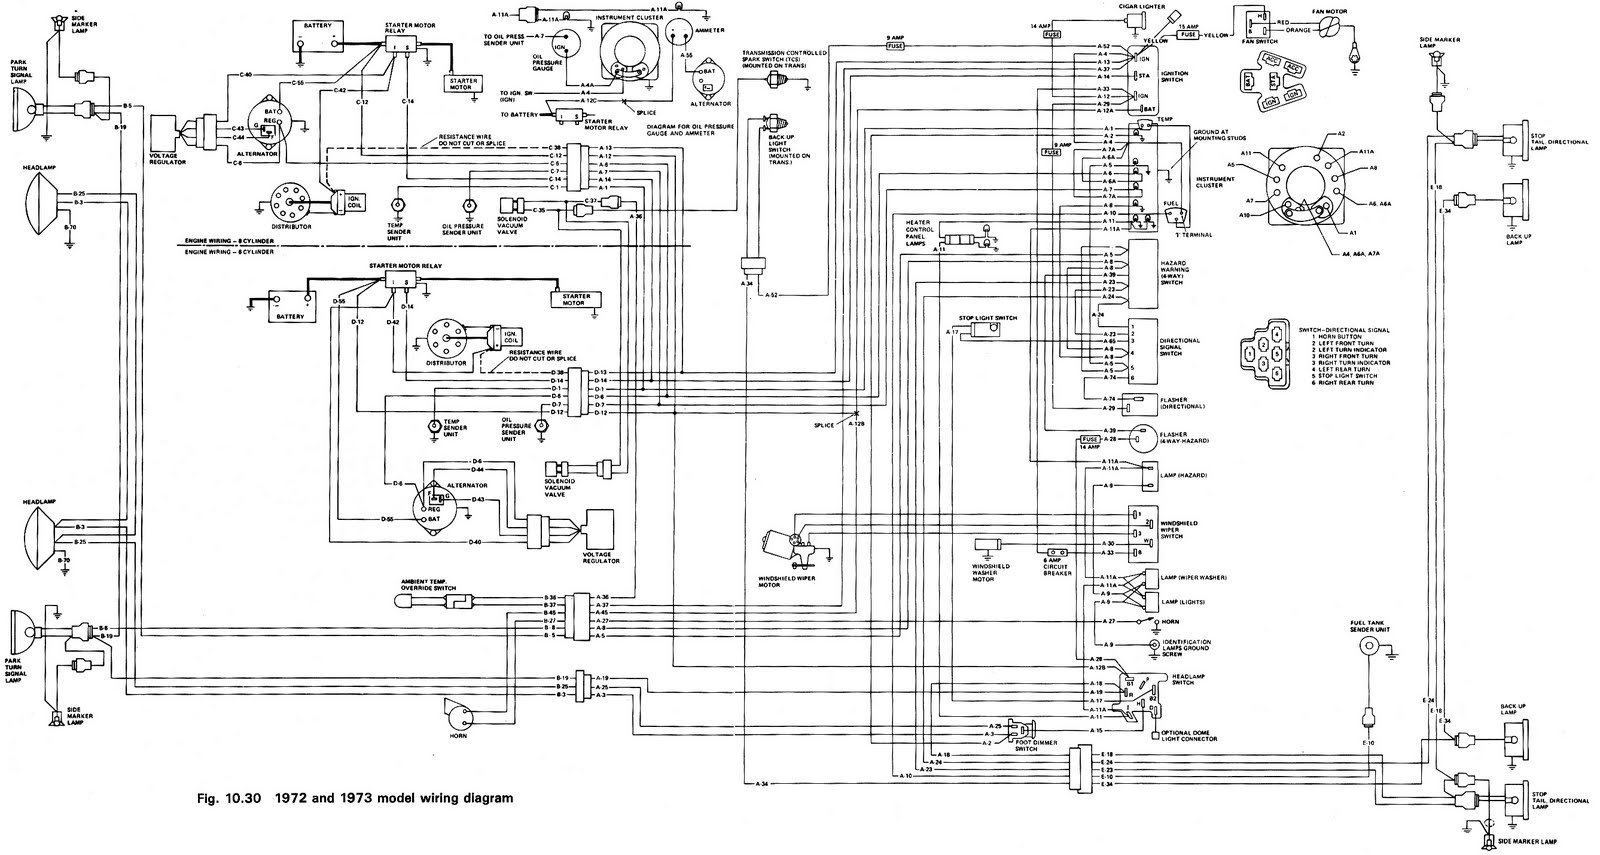 small resolution of 1970 cj5 wiring diagram cj 1976 1977jpg 1959 cj5 wiring schematic jeep cj5 wiring schematic